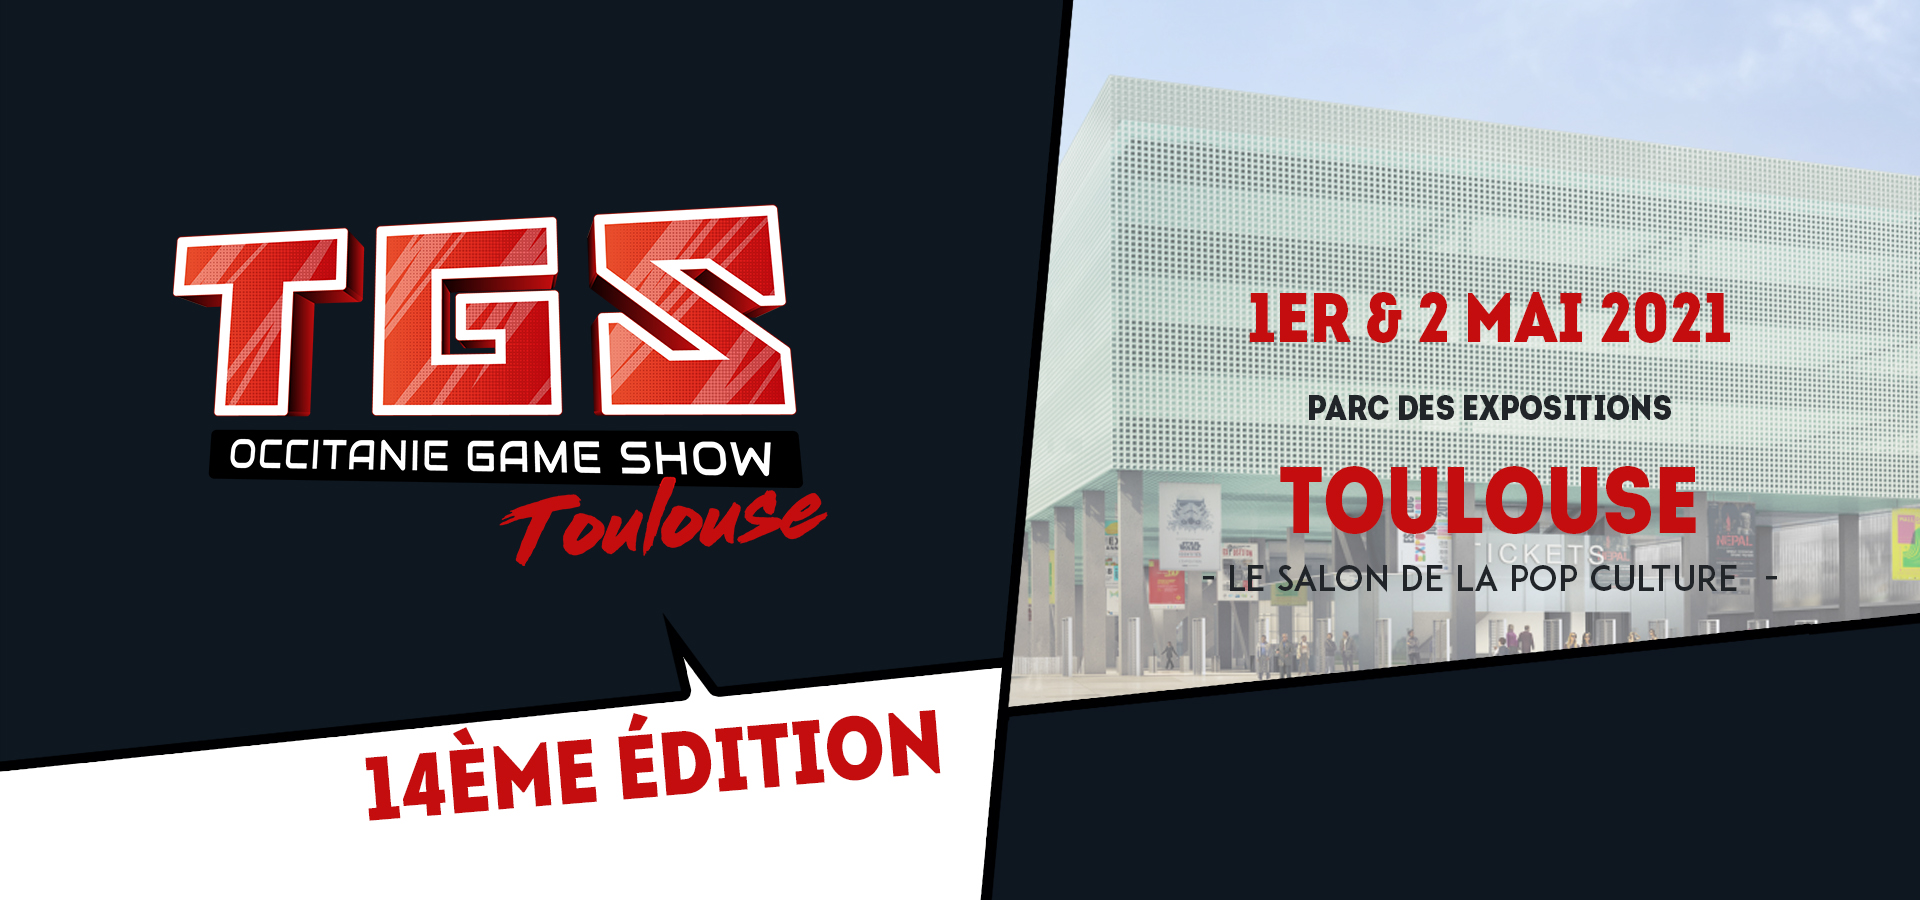 https://tgs-toulouse.fr/Slider date mai 2021